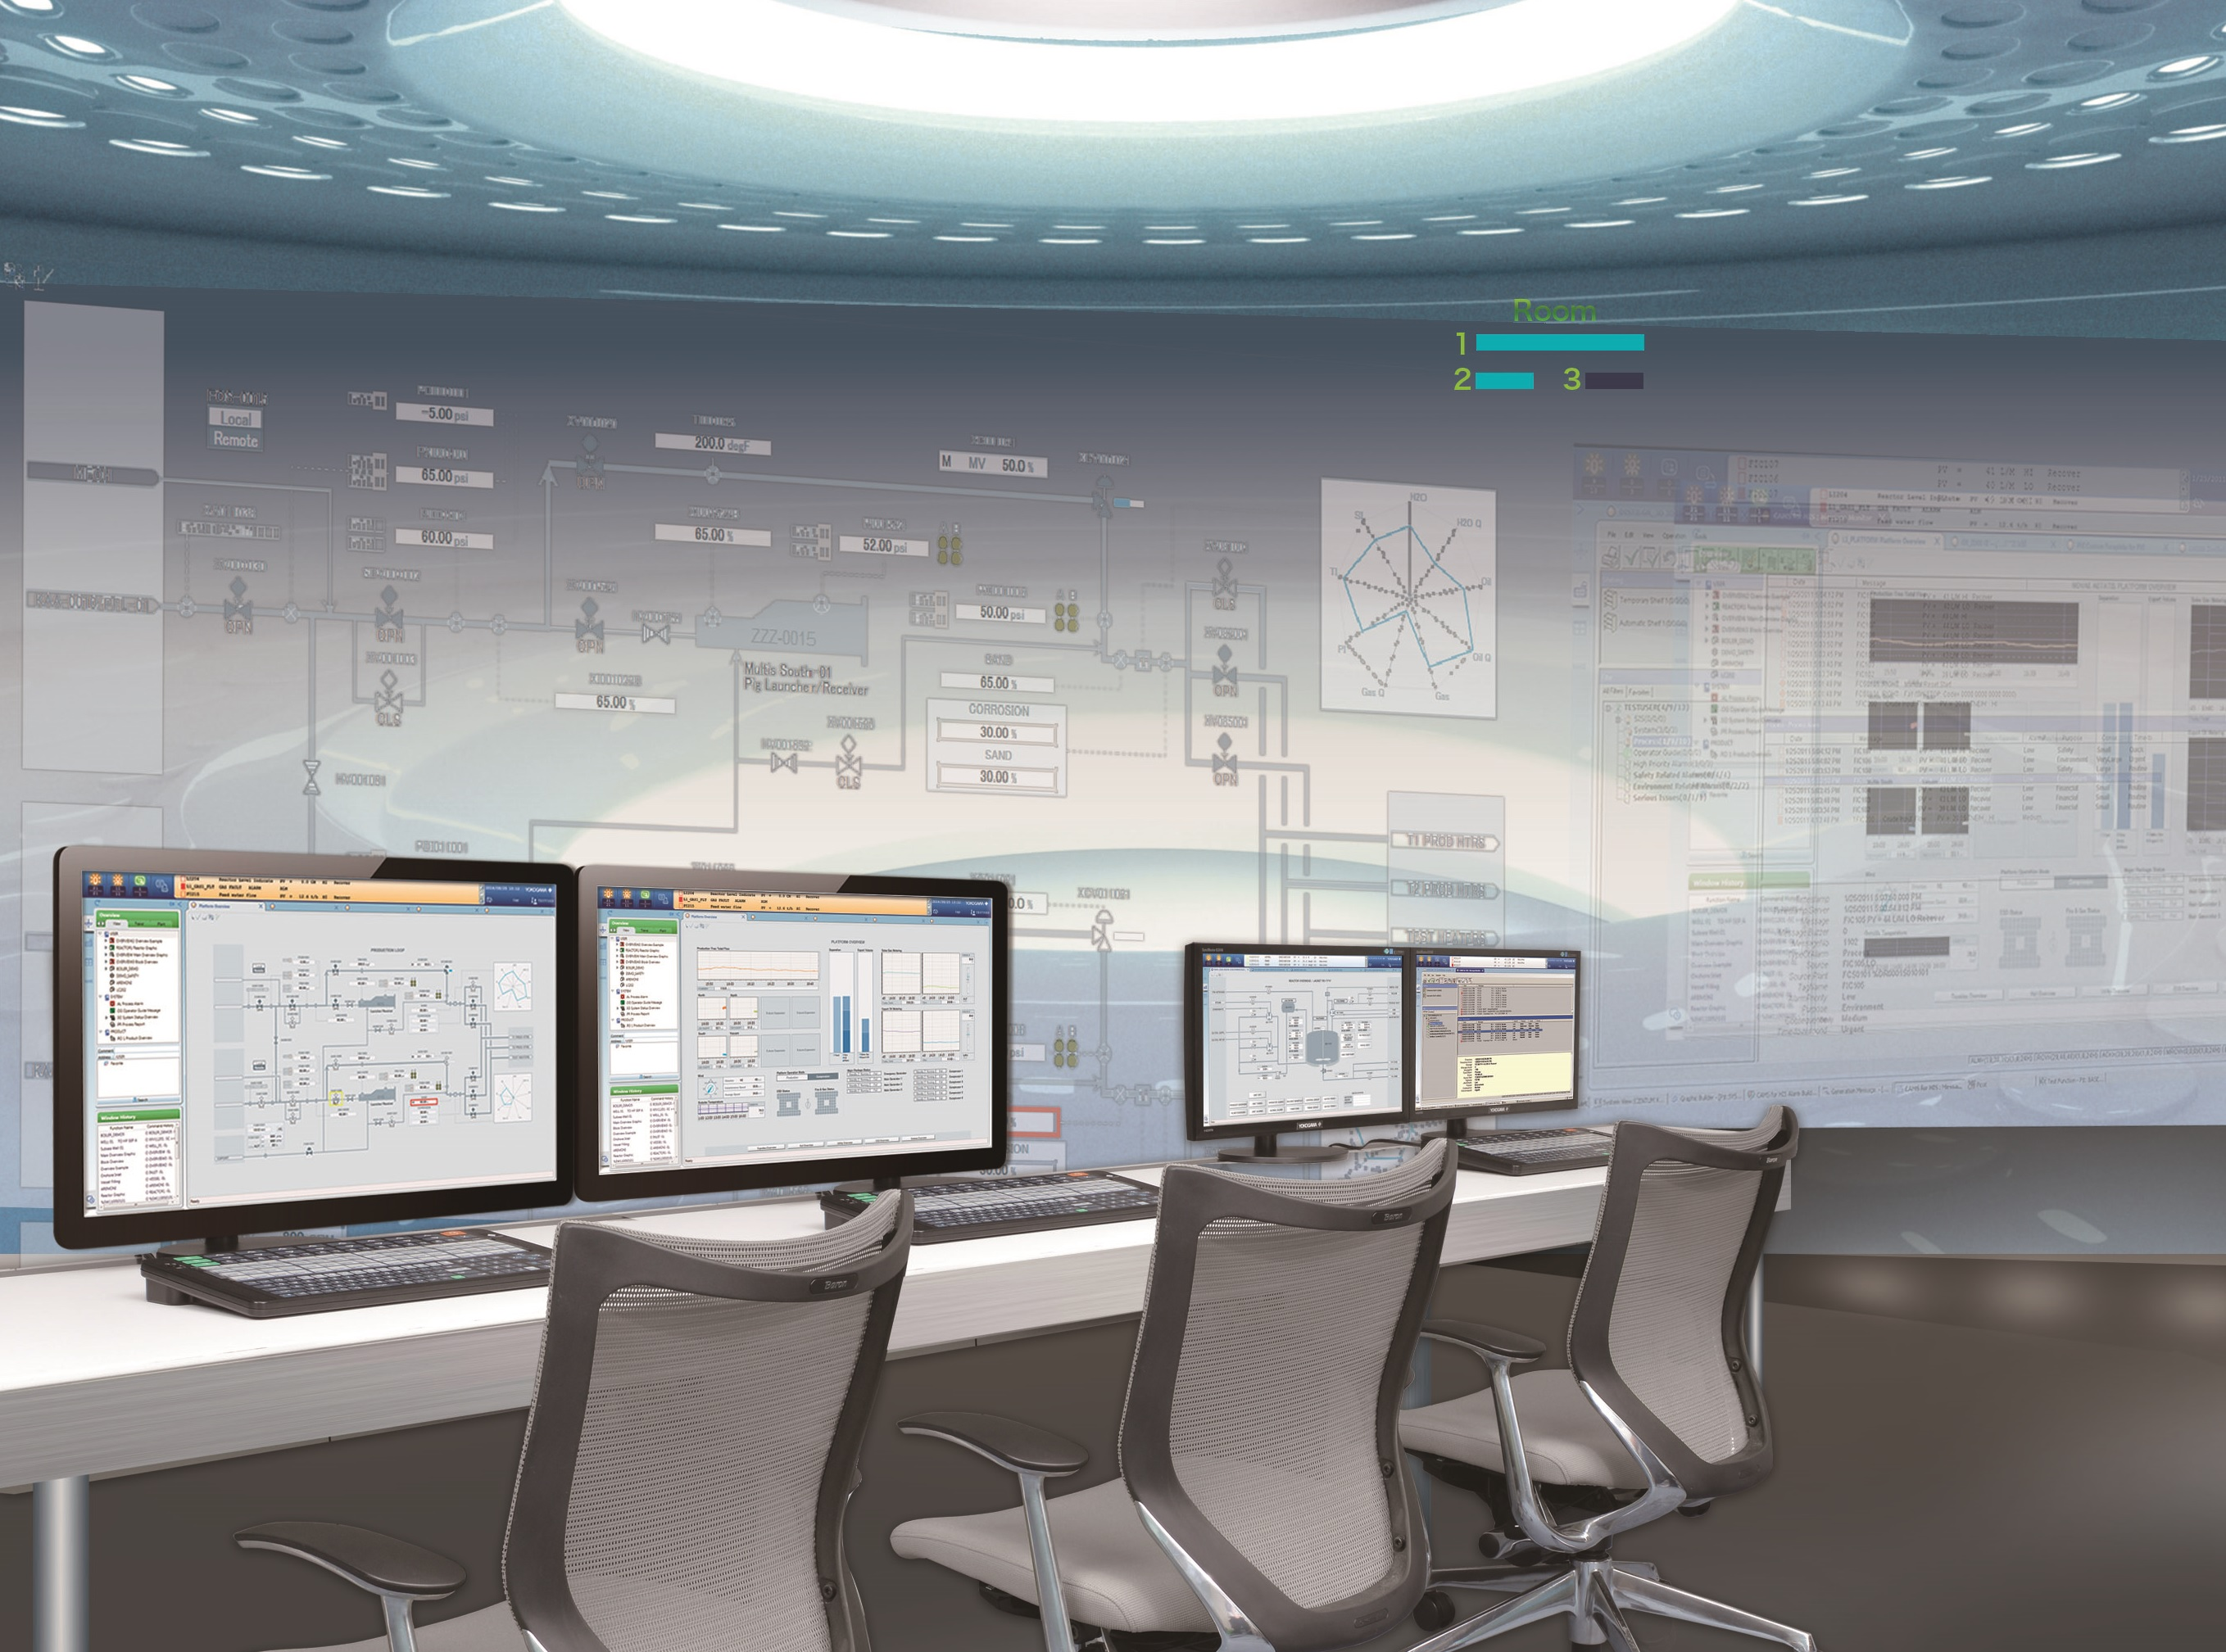 Systems integration and manufacturing automation control room